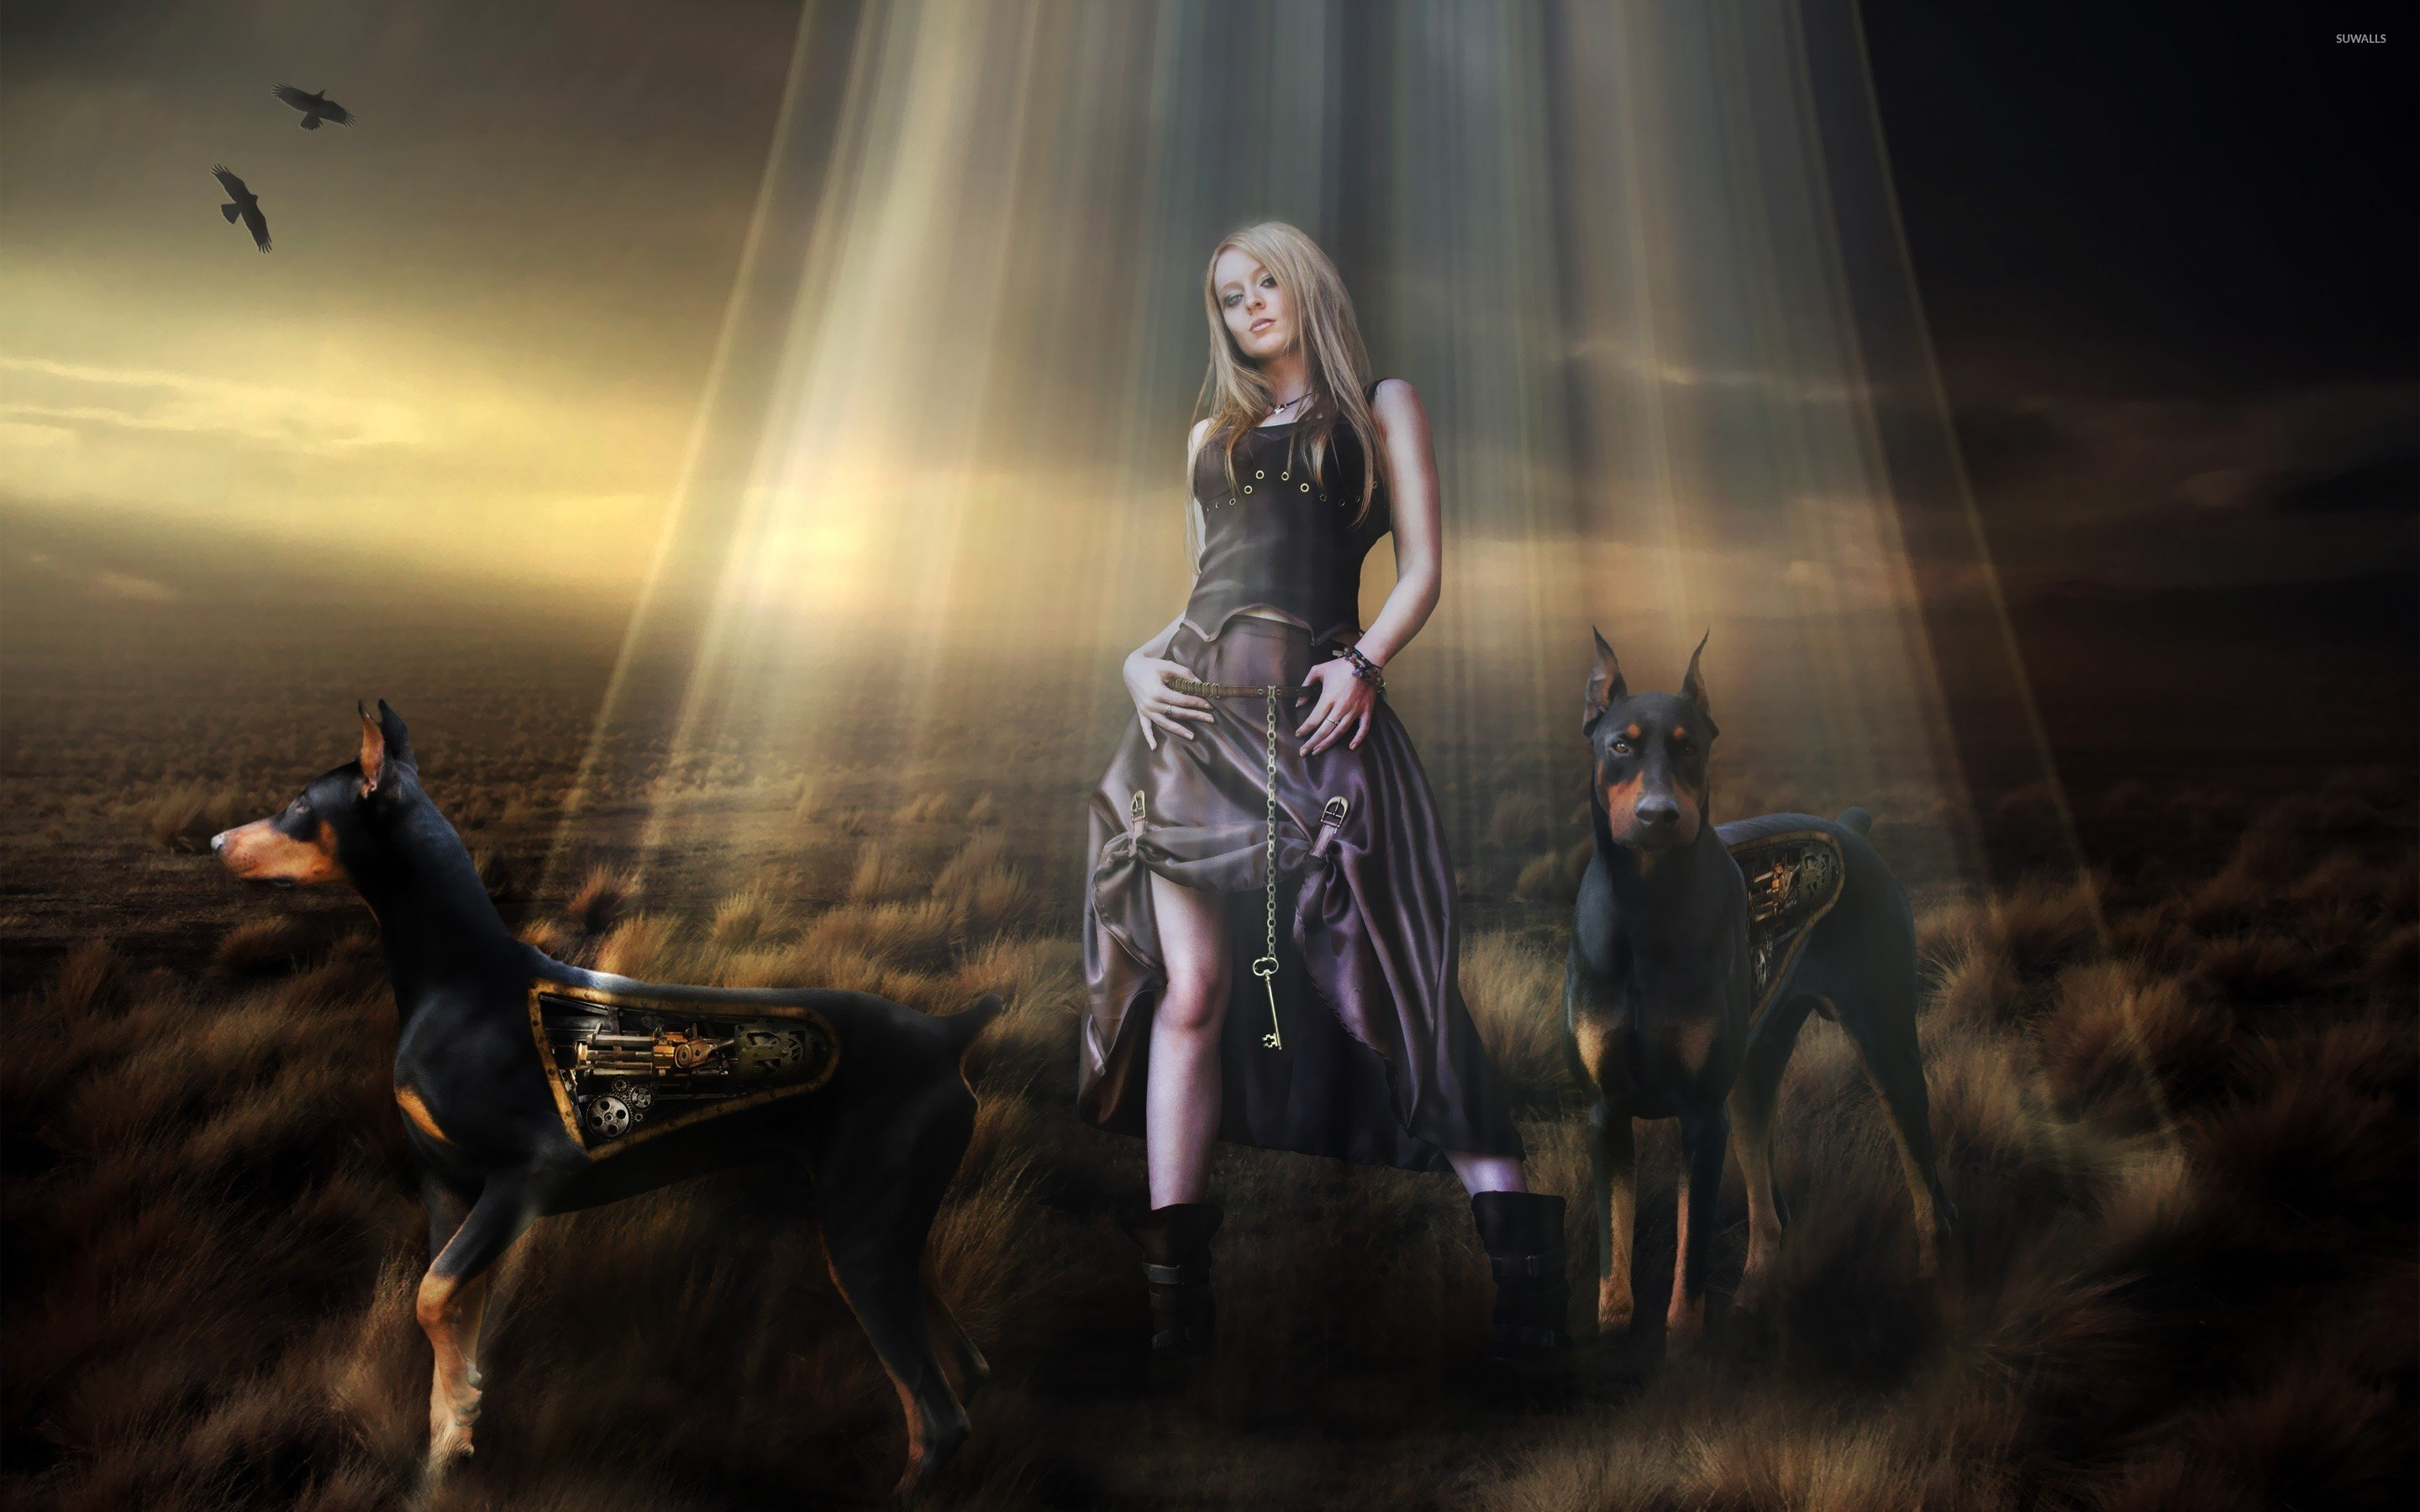 Steampunk girl and dobermans wallpaper   Fantasy wallpapers   25336 1280x800